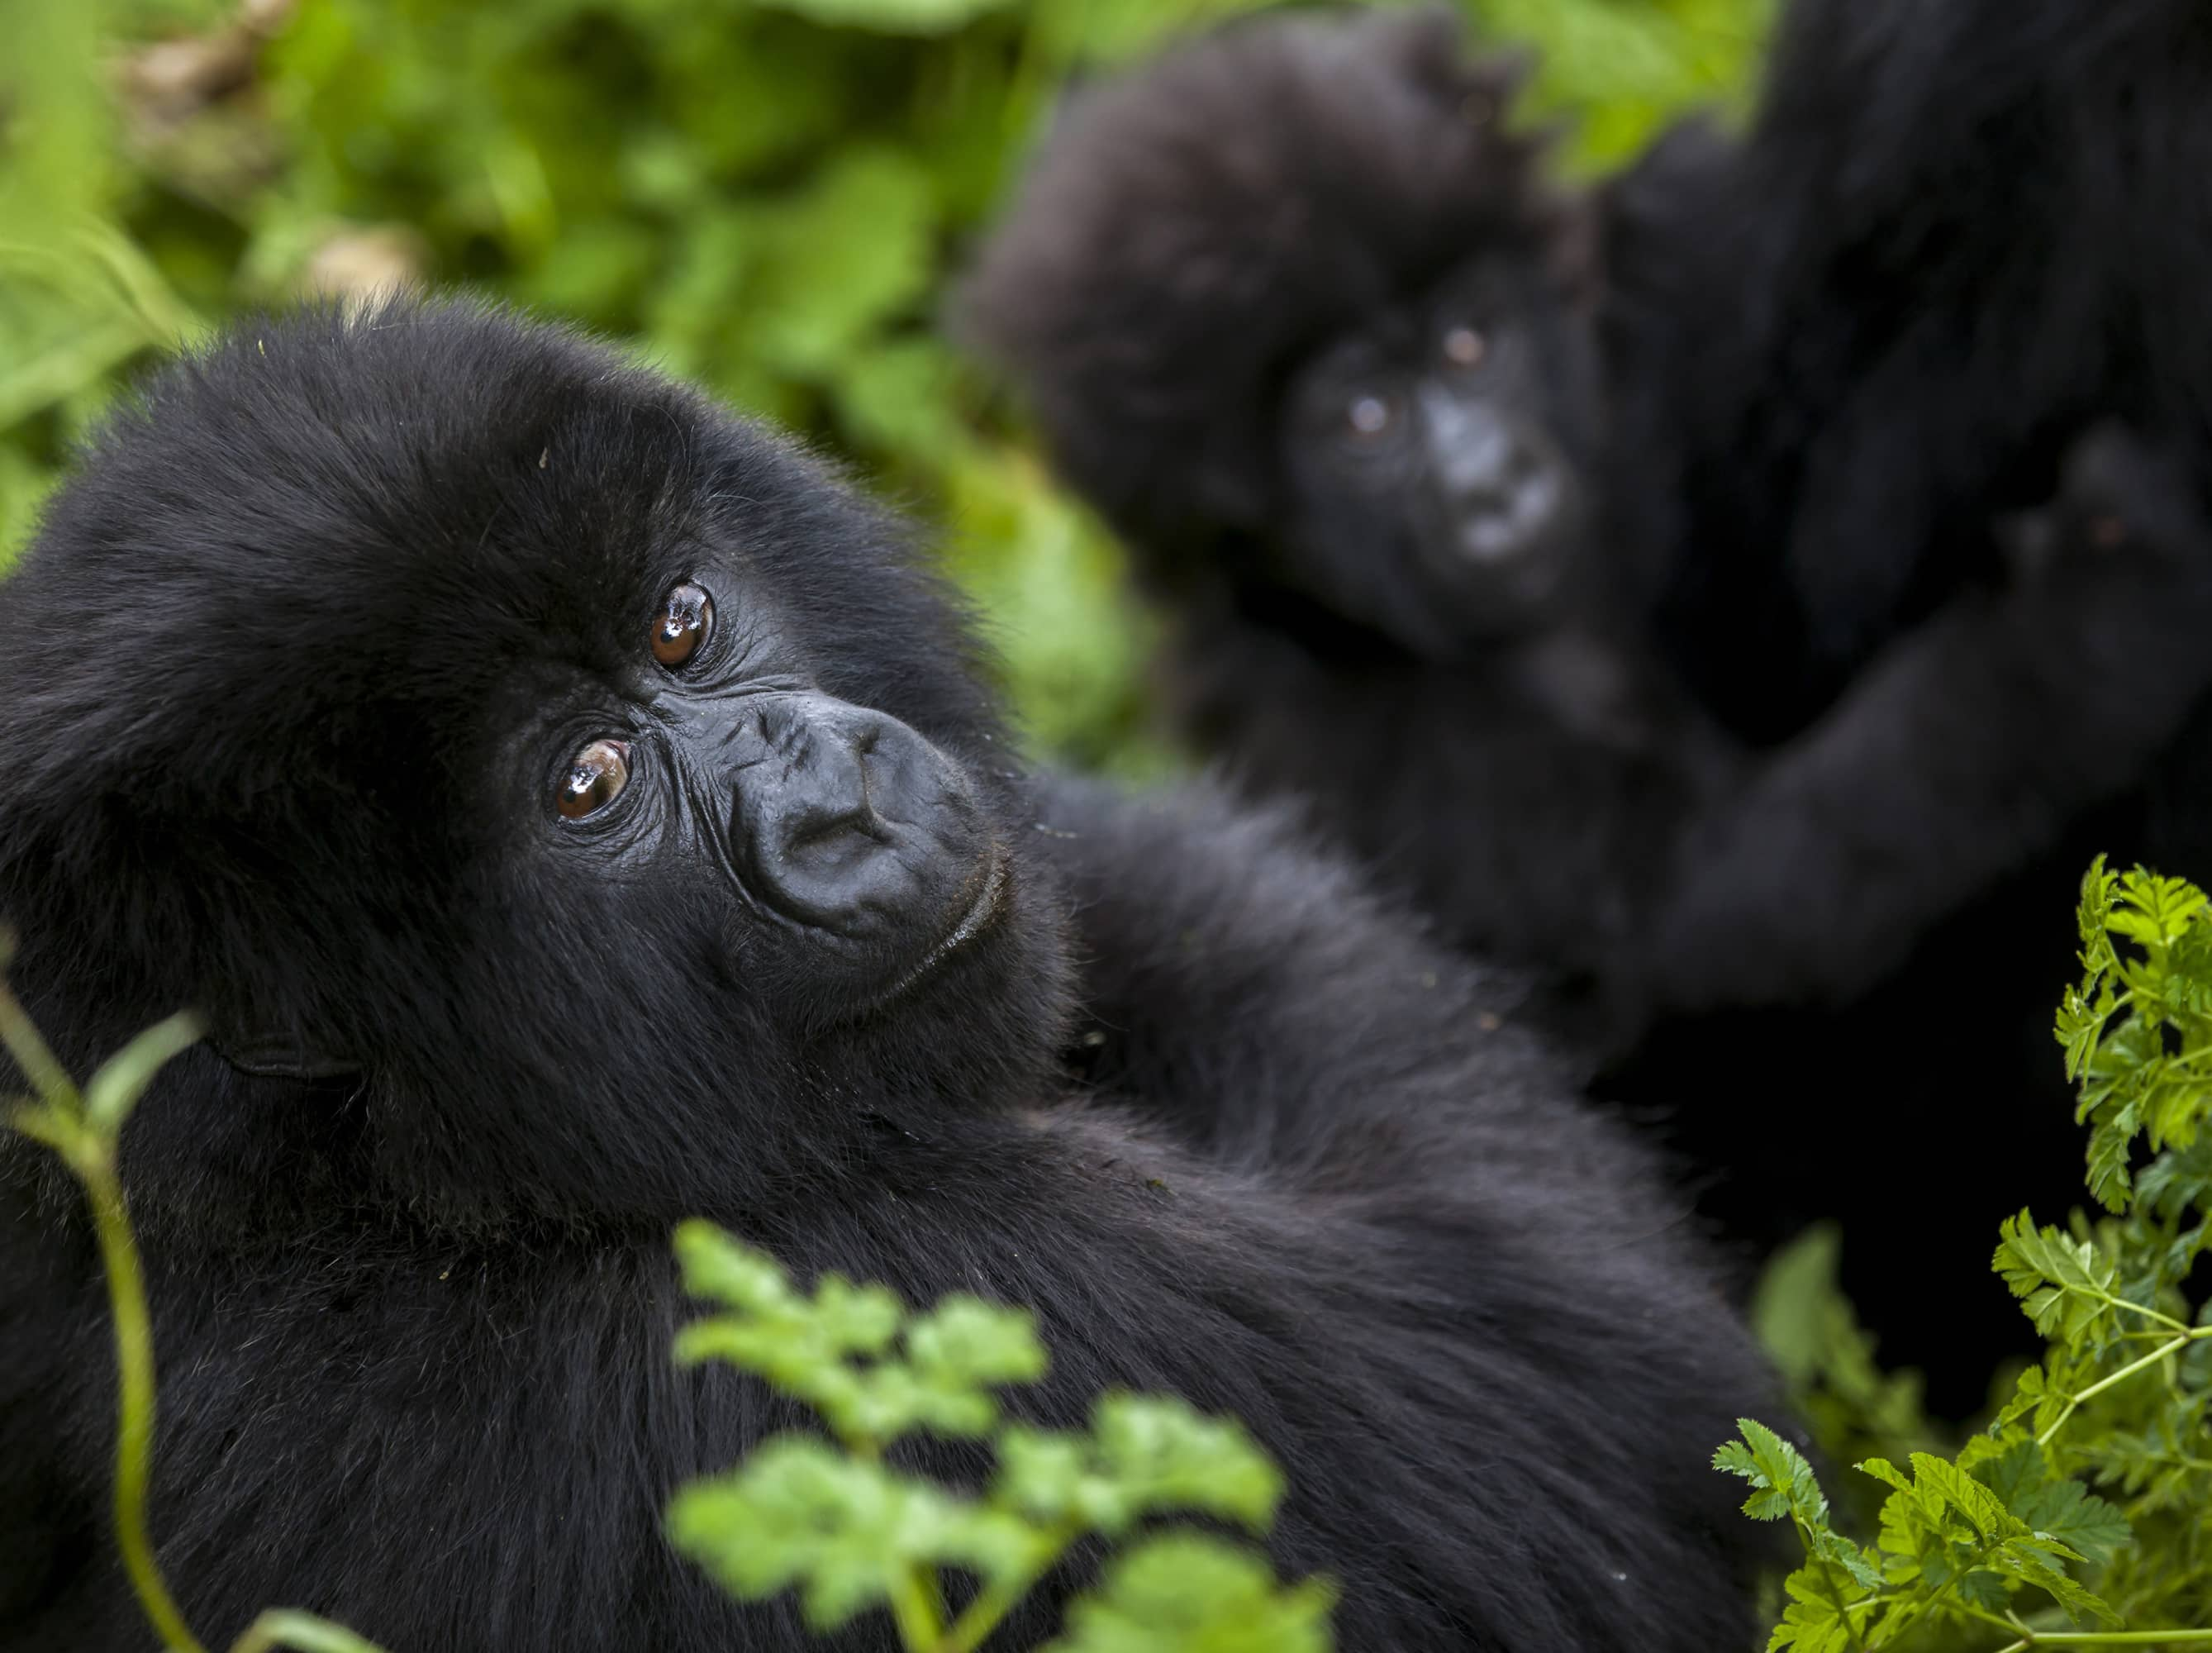 Encounter a family of rare mountain gorillas.